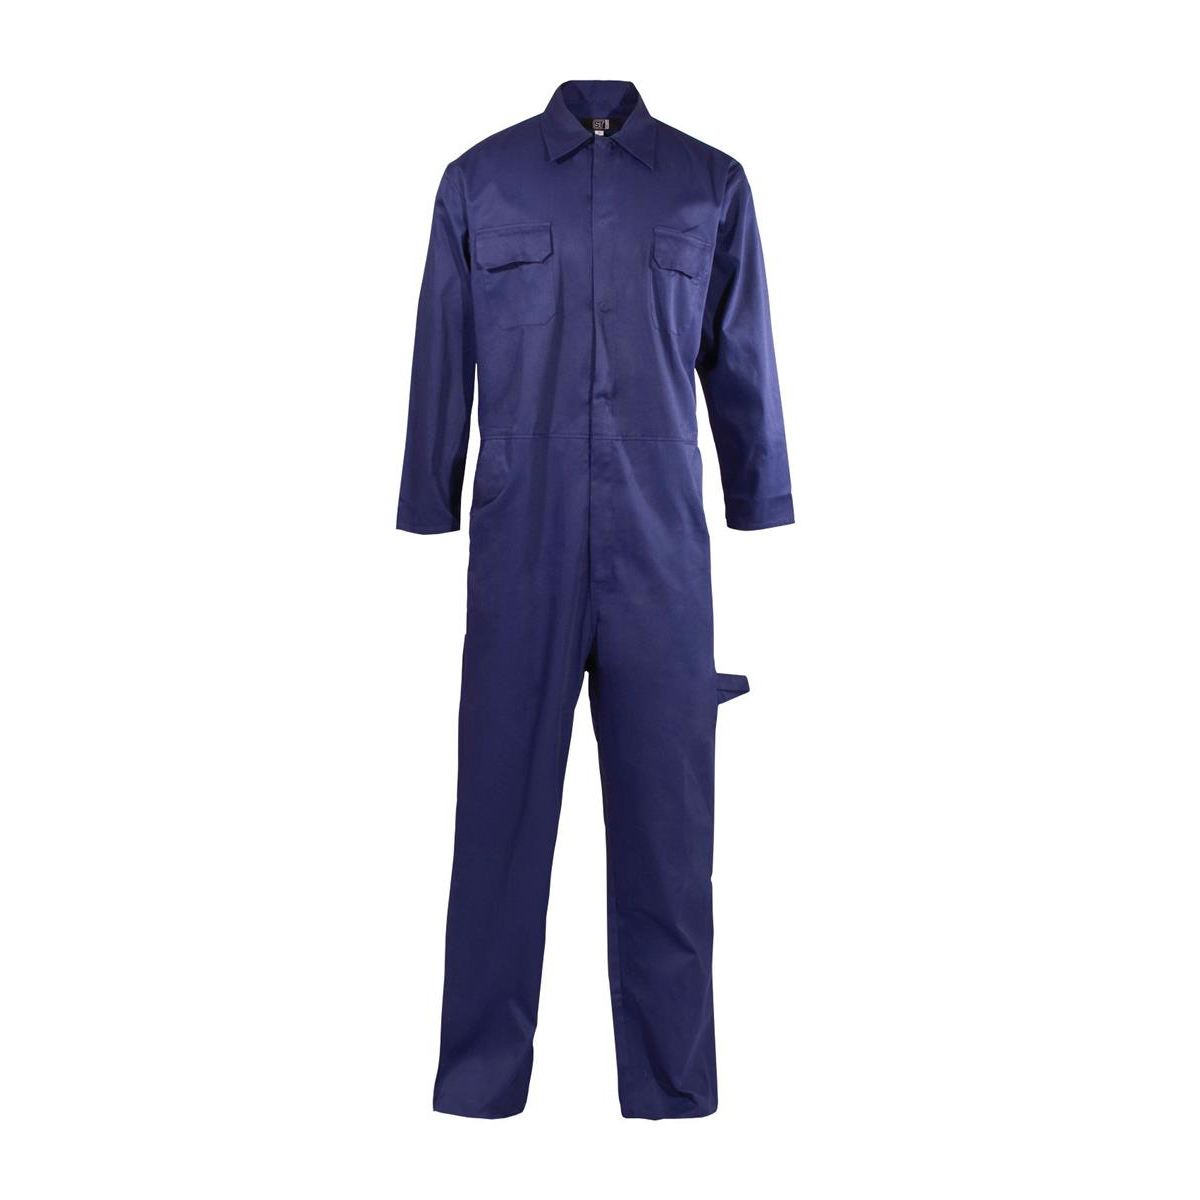 Coverall Basic with Popper Front Opening Polycotton Small Navy Approx 3 Day Leadtime